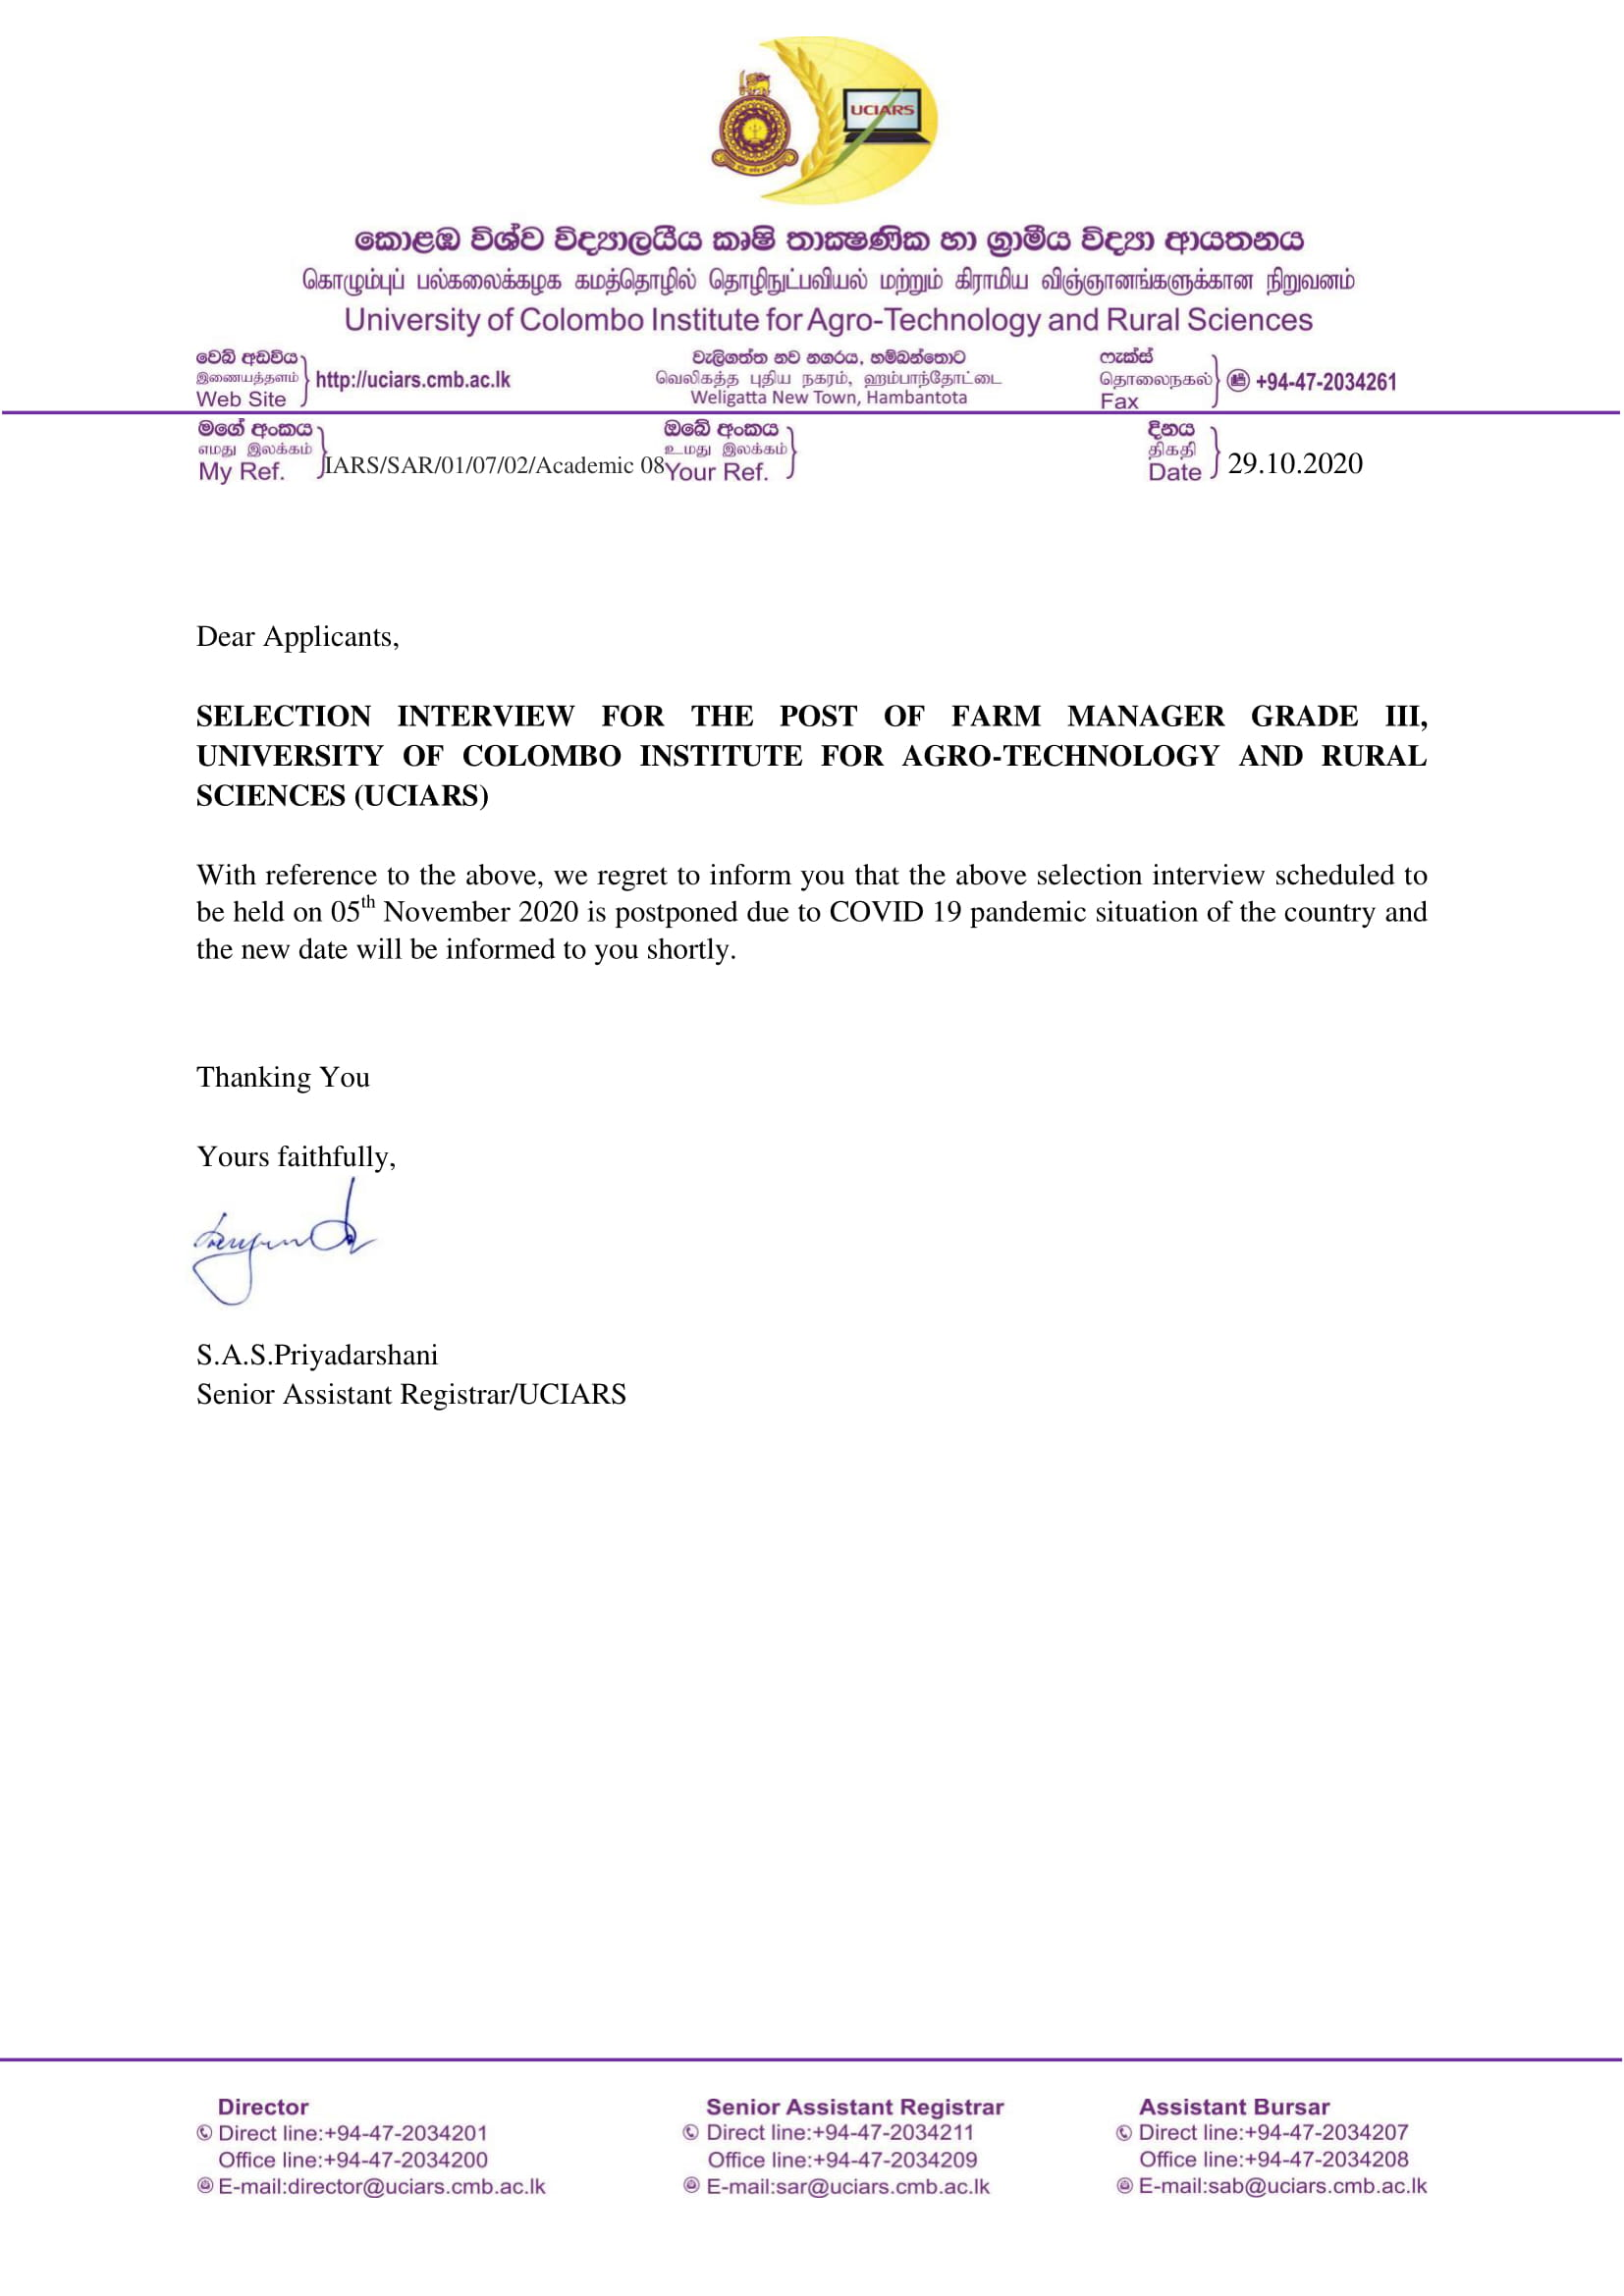 Postponement of Selection interview of Farm Manager